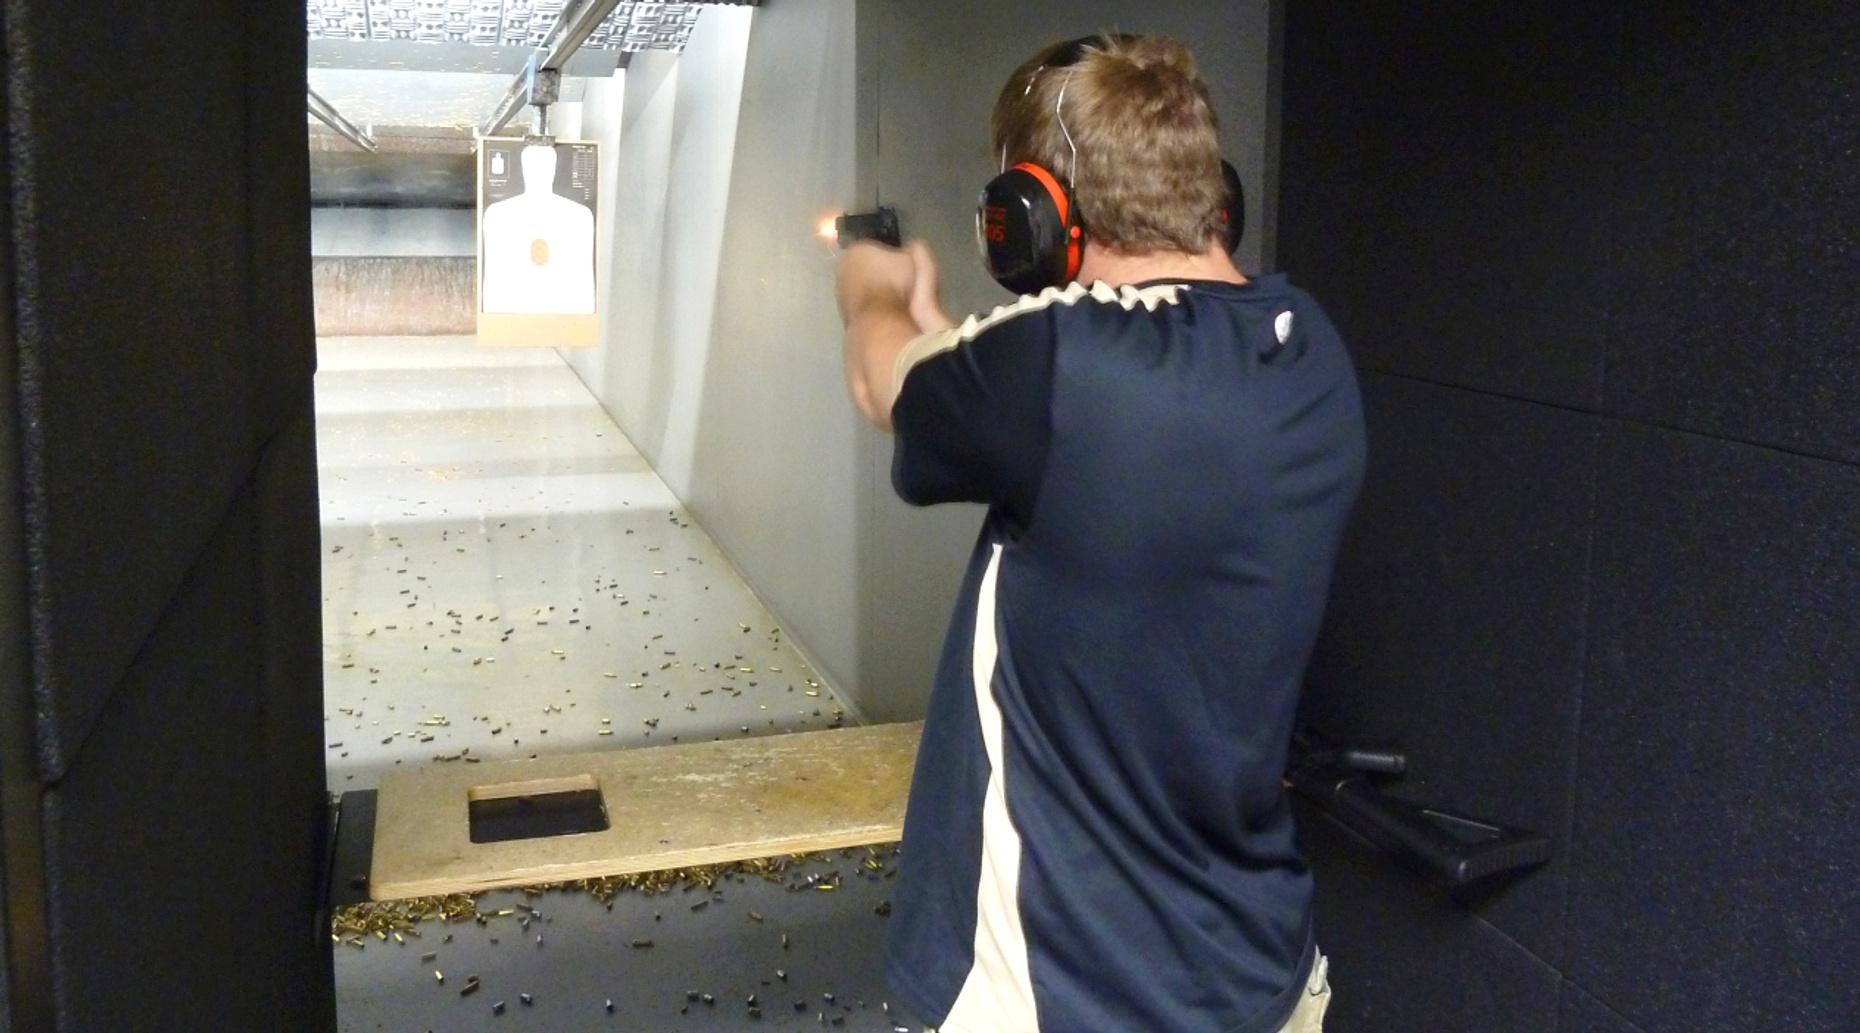 Shooting Range Package in Las Vegas